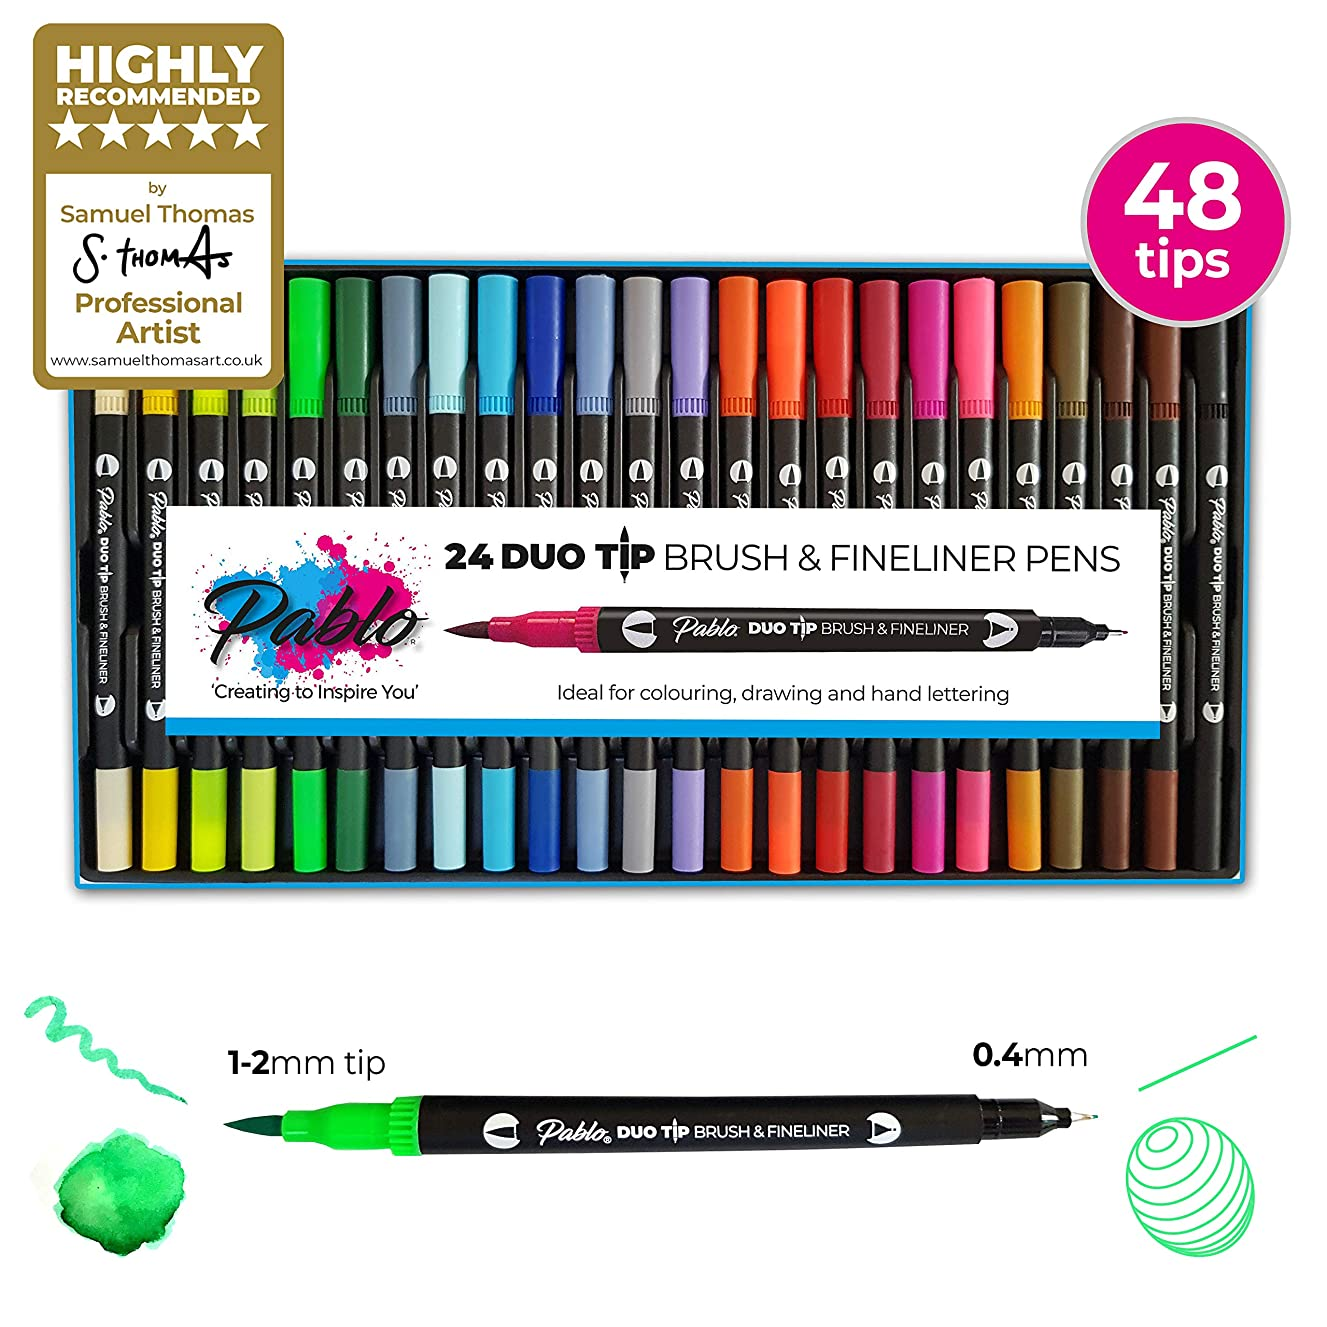 Fineliner Pens & Watercolour Brush Pens (Duo Tip, Set of 24) - by PABLO - Ideal for Colouring, Drawing & Hand Lettering - 48 nibs - Vibrant Colours - Water-Based Ink